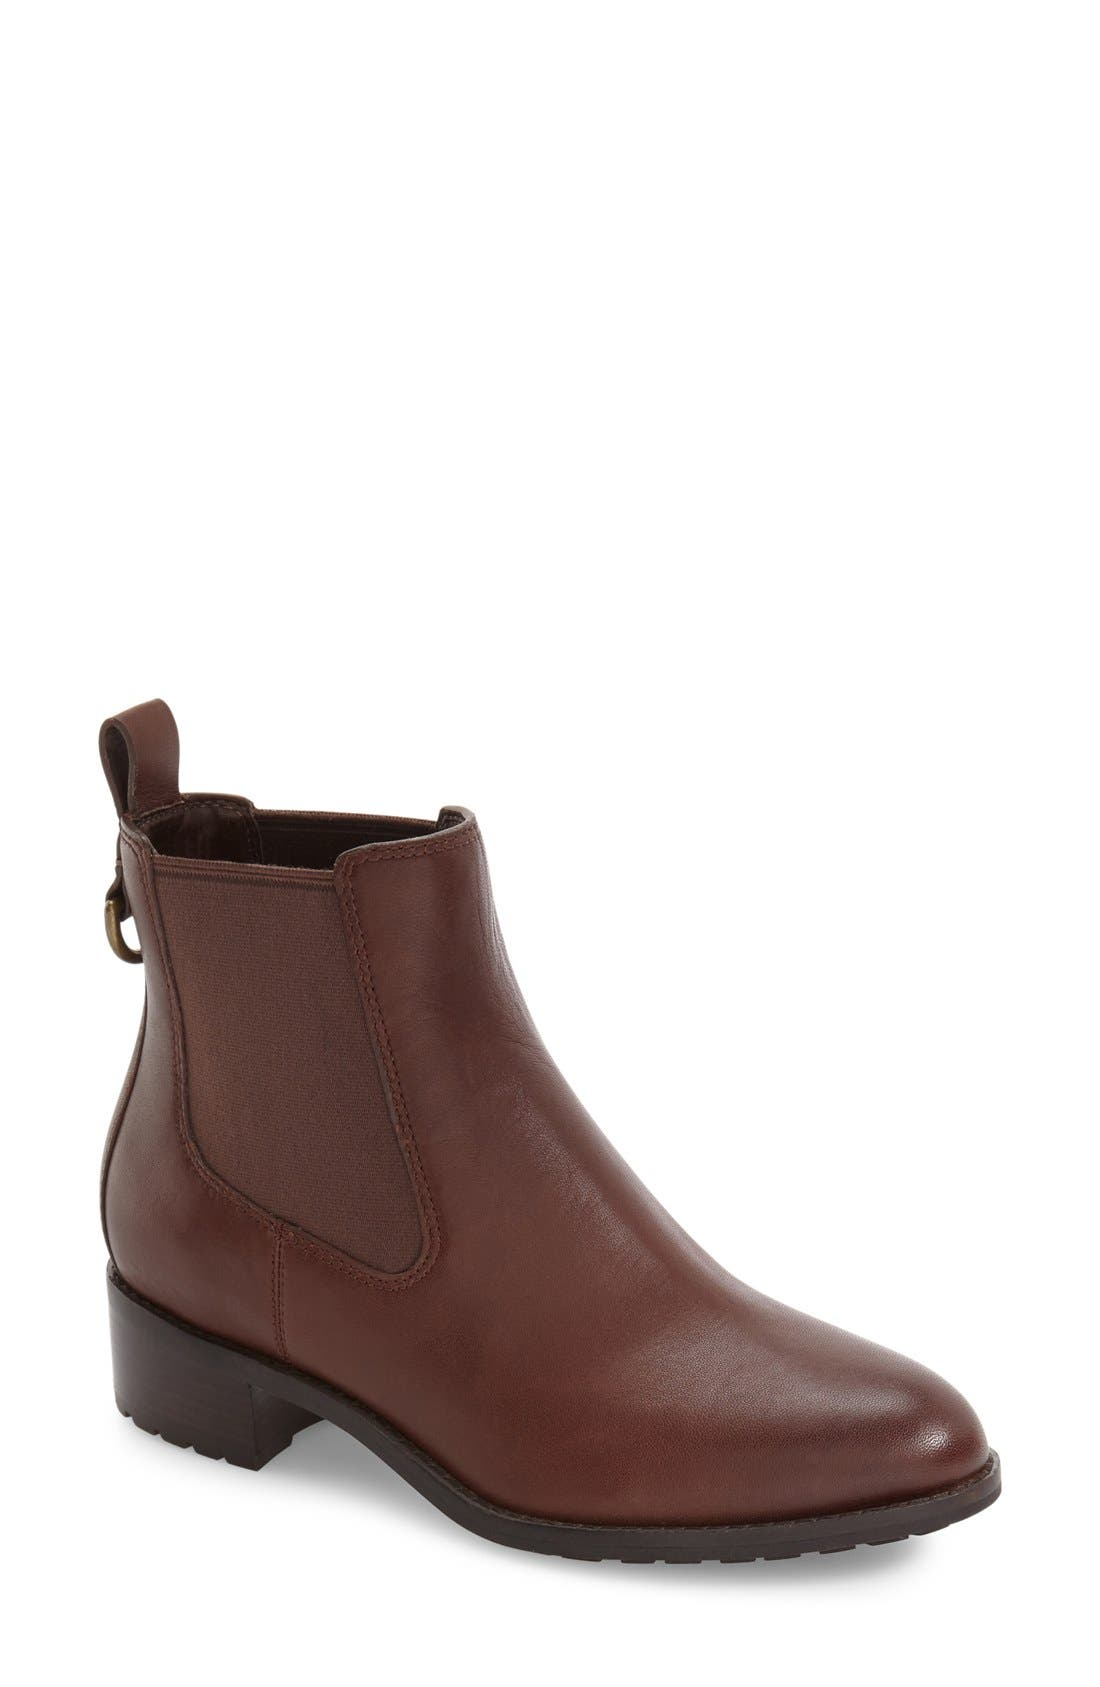 COLE HAAN, Newburg Waterproof Chelsea Boot, Main thumbnail 1, color, CHESTNUT LEATHER